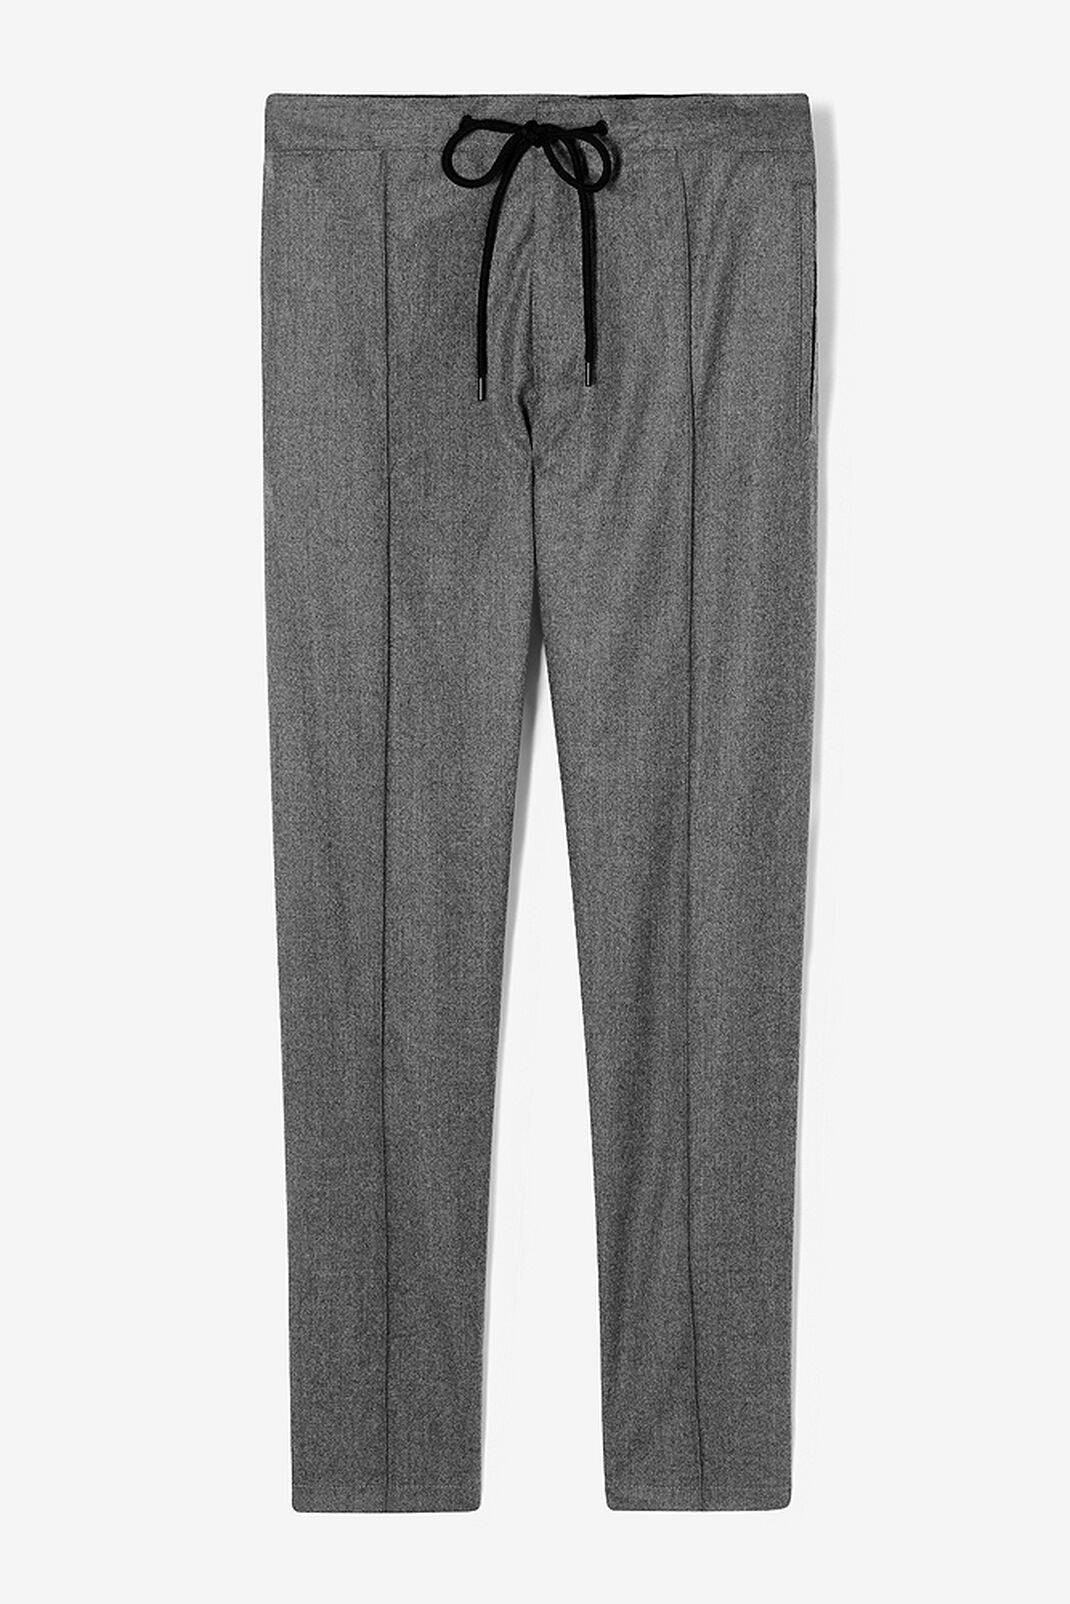 DARK GREY Drawstring flannel trousers for men KENZO